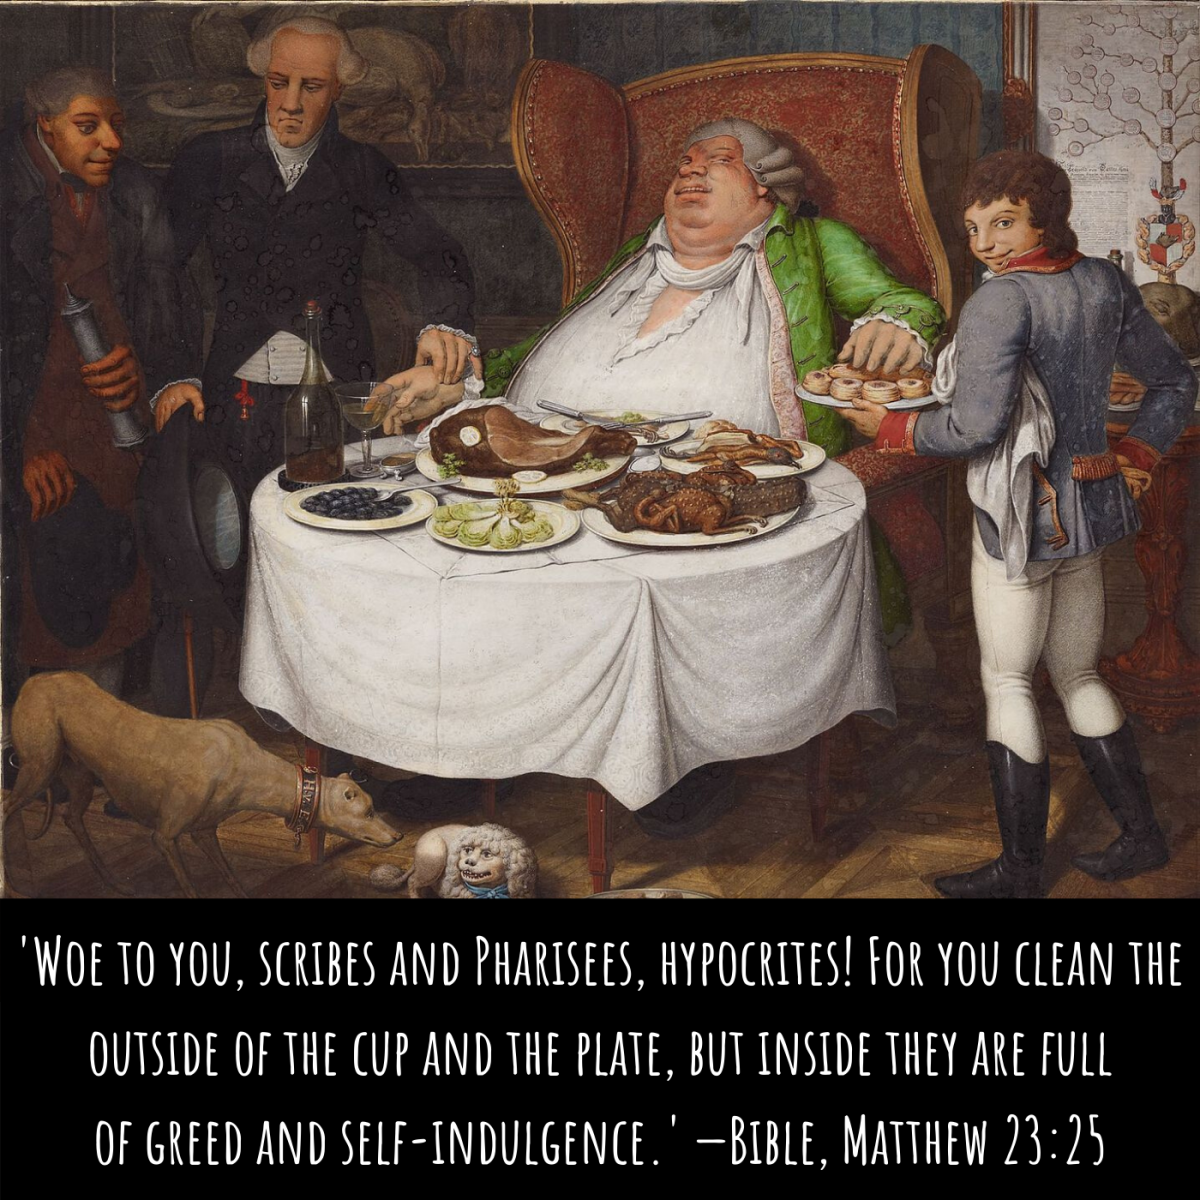 'Woe to you, scribes and Pharisees, hypocrites! Foryou clean the outside ofthe cup and the plate, but inside they are full ofgreed and self-indulgence.' —Bible, Matthew 23:25